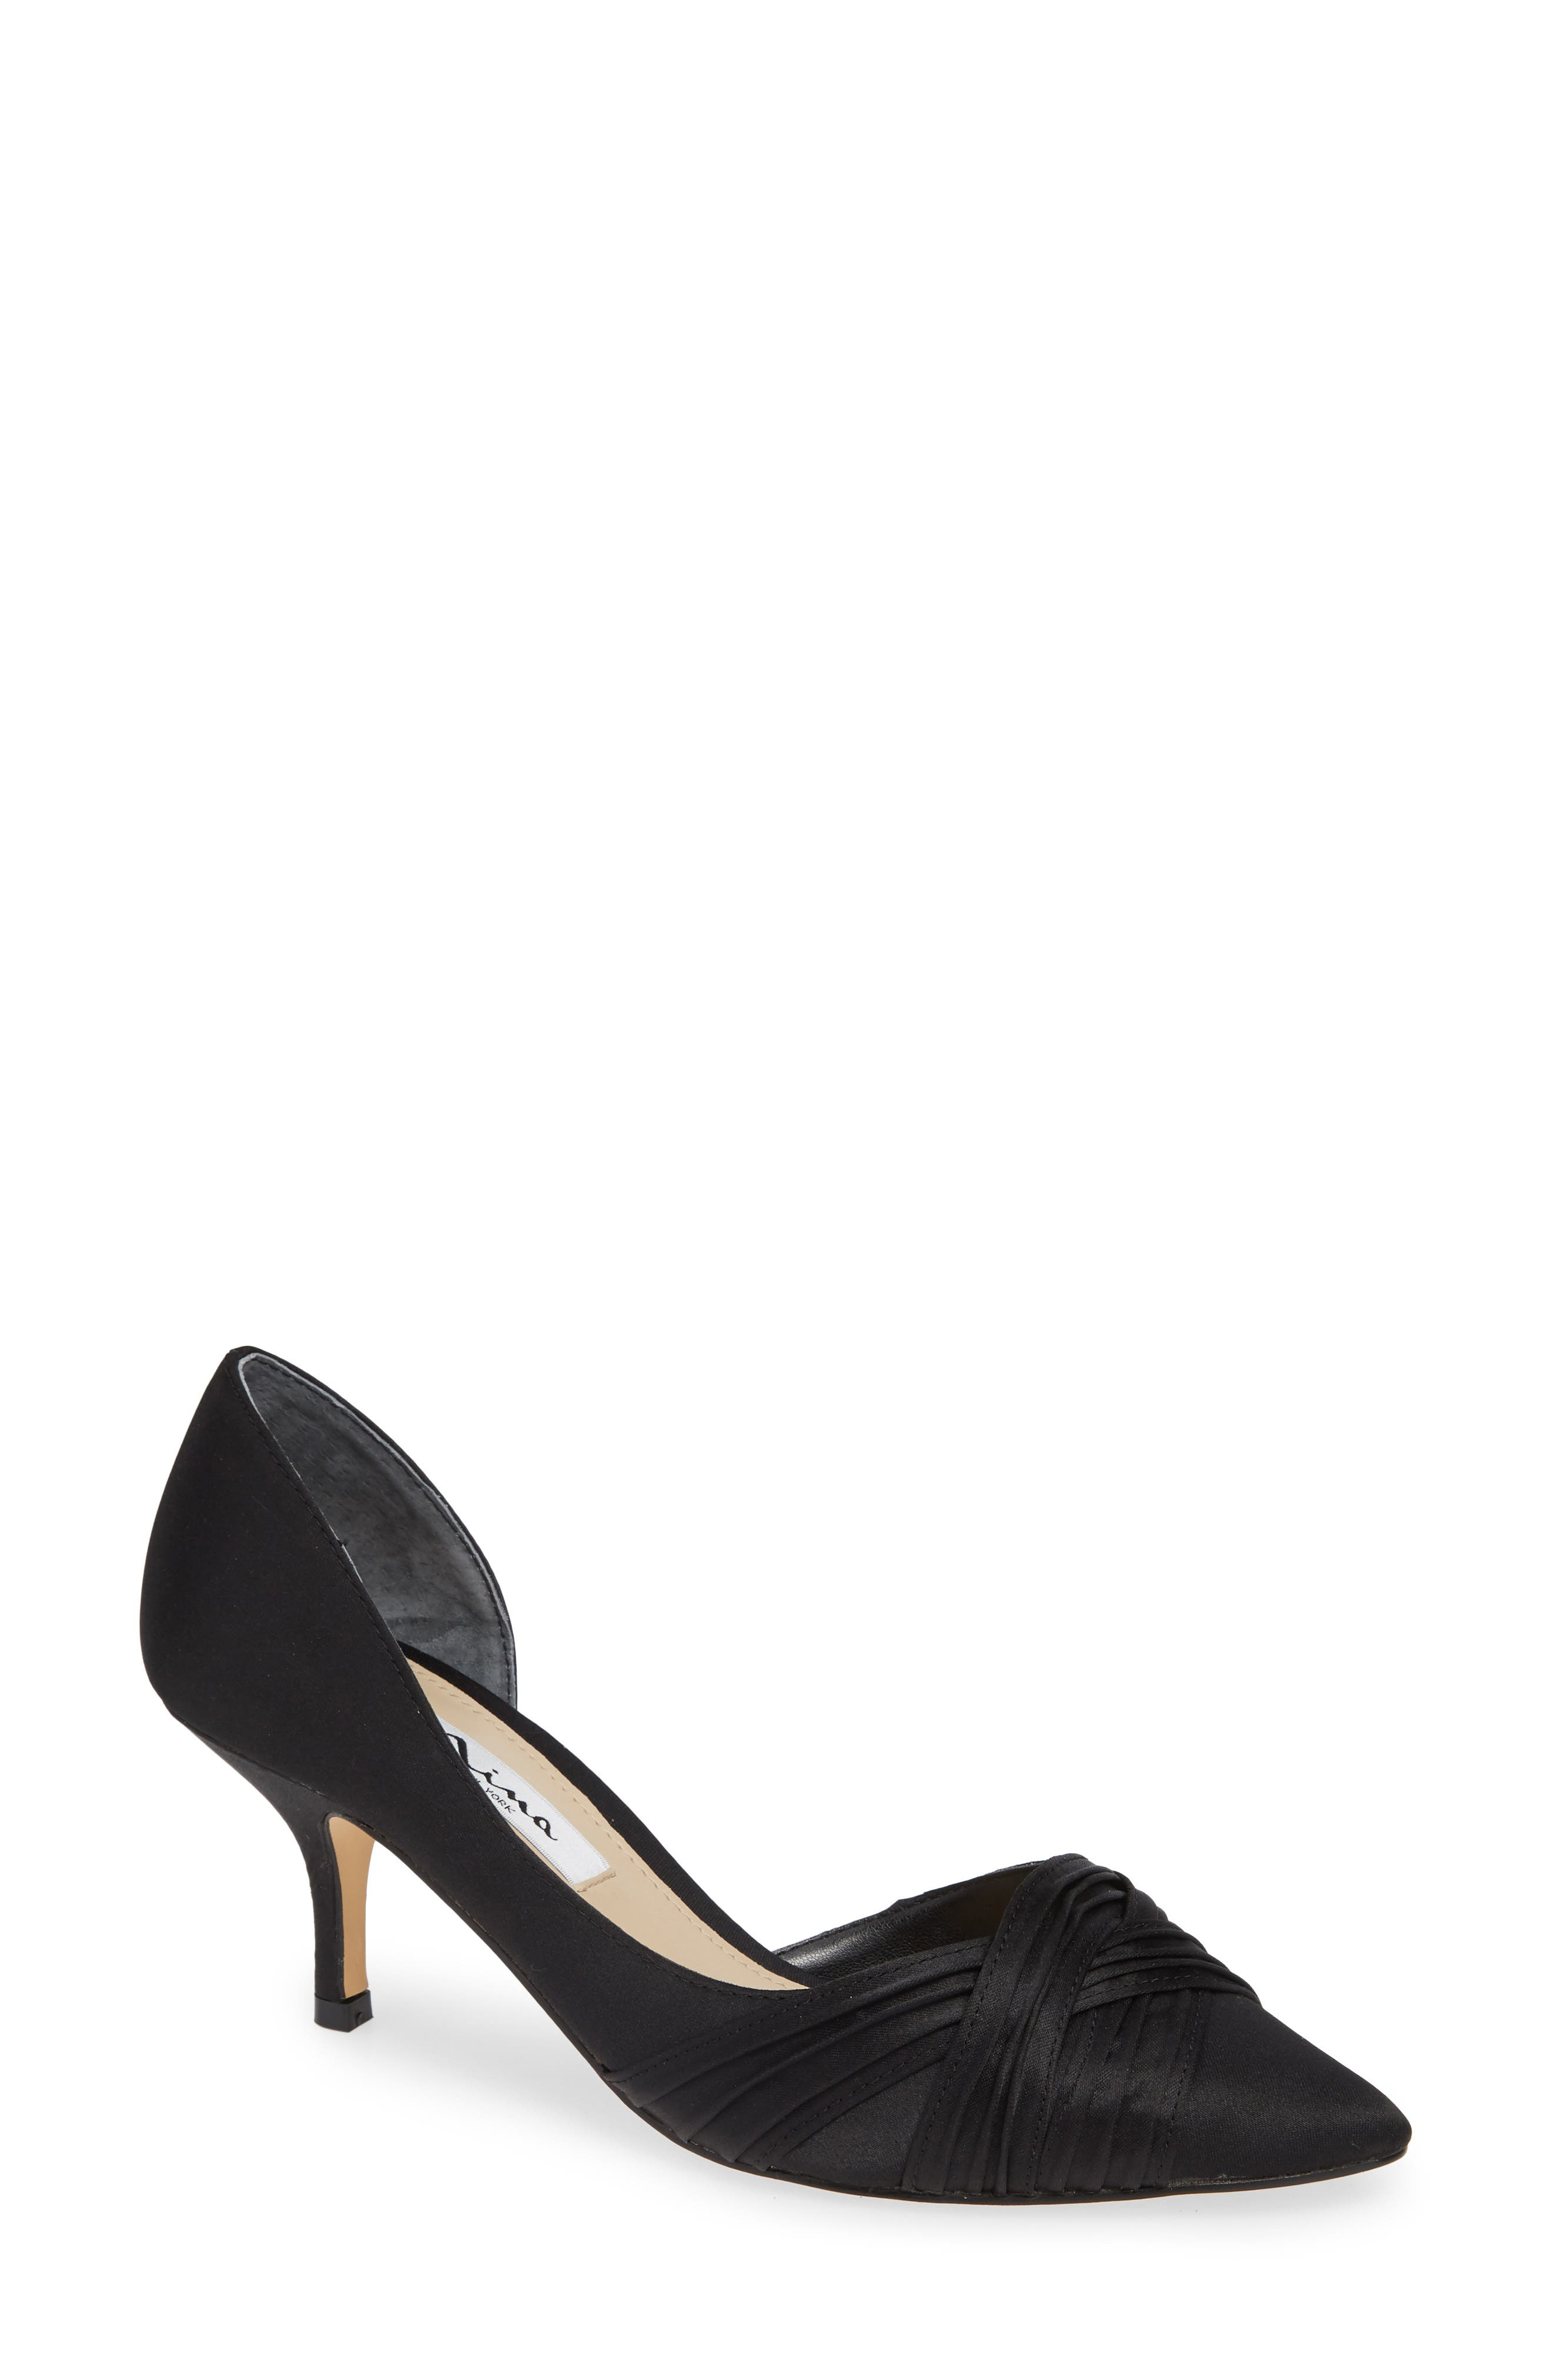 Blakely Half d'Orsay Pointy Toe Pump,                             Main thumbnail 1, color,                             BLACK SATIN